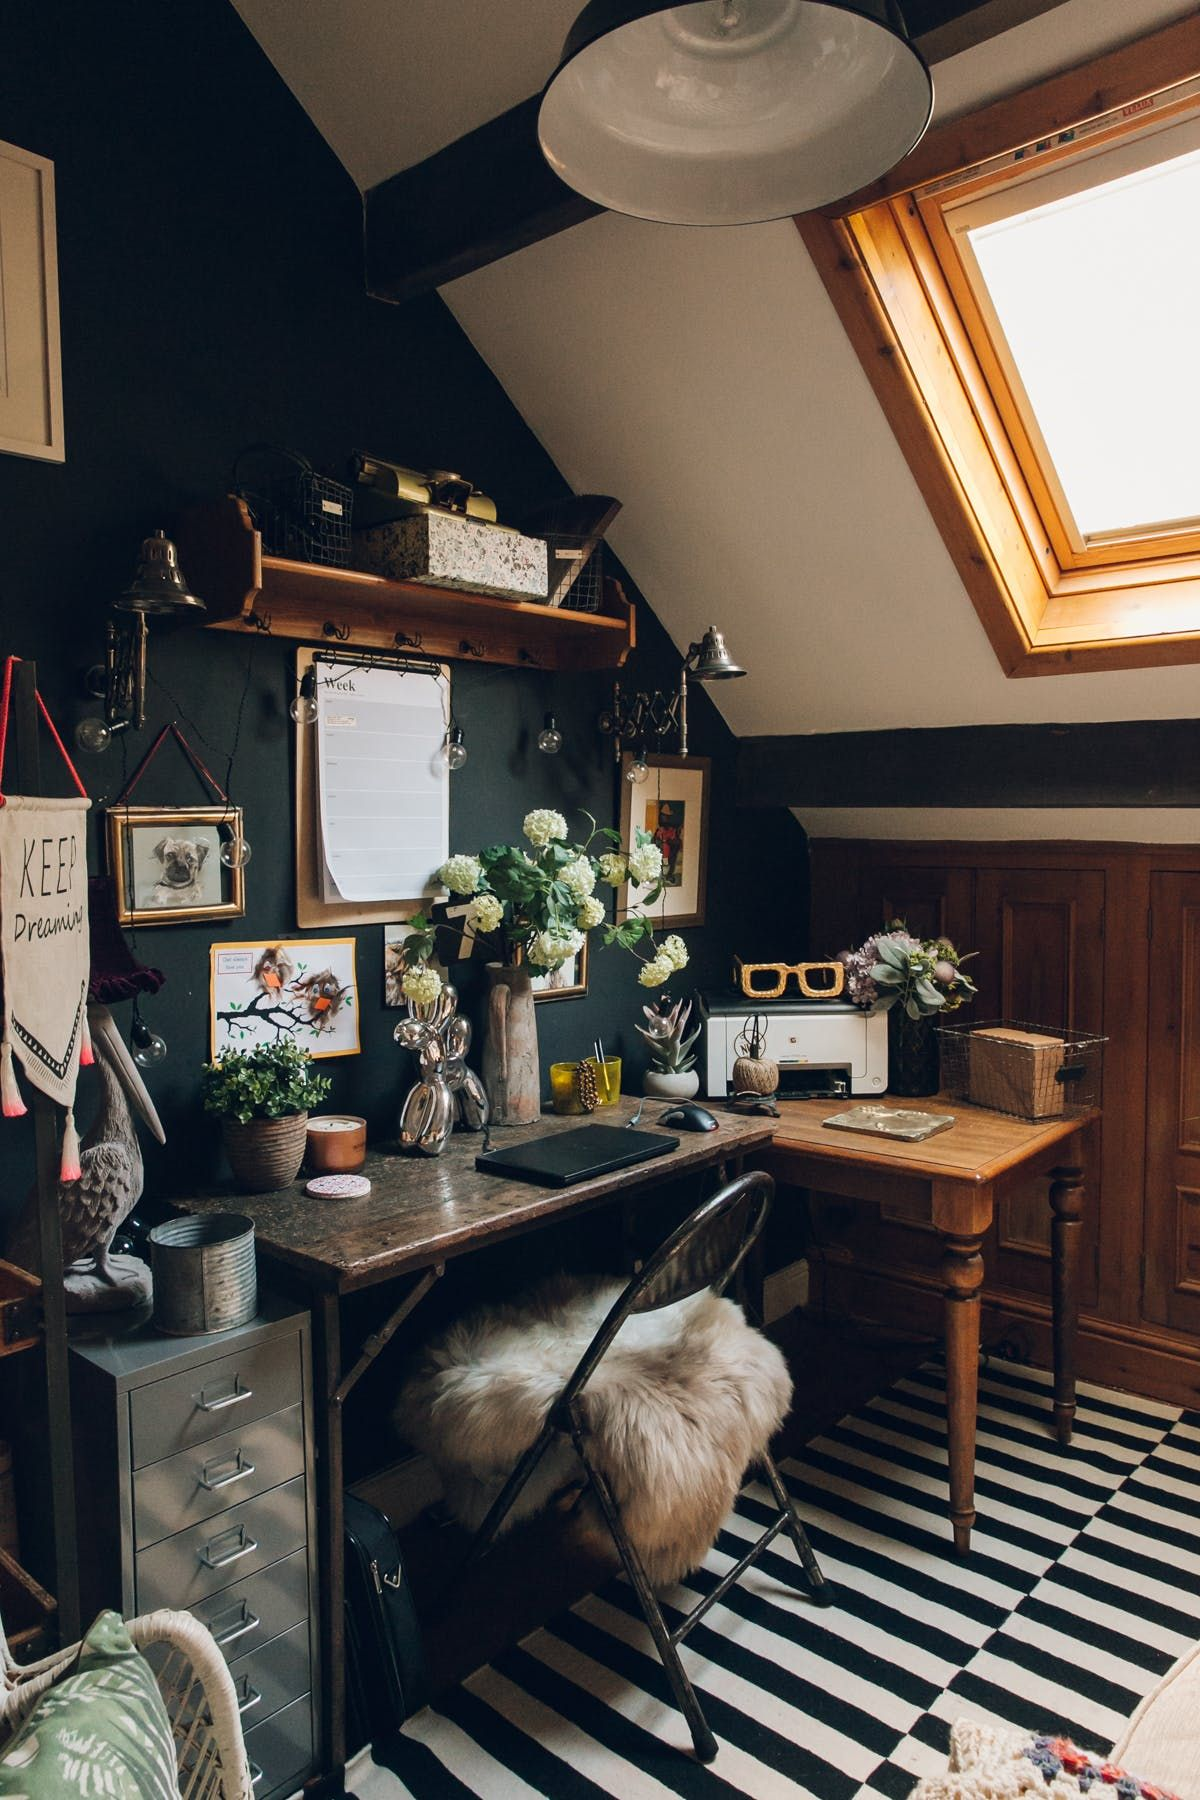 A Dark, Moody, Vintage-Filled Victorian in the UK | N E S T | Home on old heritage furniture, old beach furniture, old cedar furniture, old office cubicle, old restaurant furniture, old leather furniture, old vehicle furniture, old office chairs, old waiting room furniture, old furniture decor, old money furniture, old furniture carts, old home furniture, old office environment, old finished furniture, old office posters, old office storage, old mesh chair, old ranch furniture, old plastic furniture,